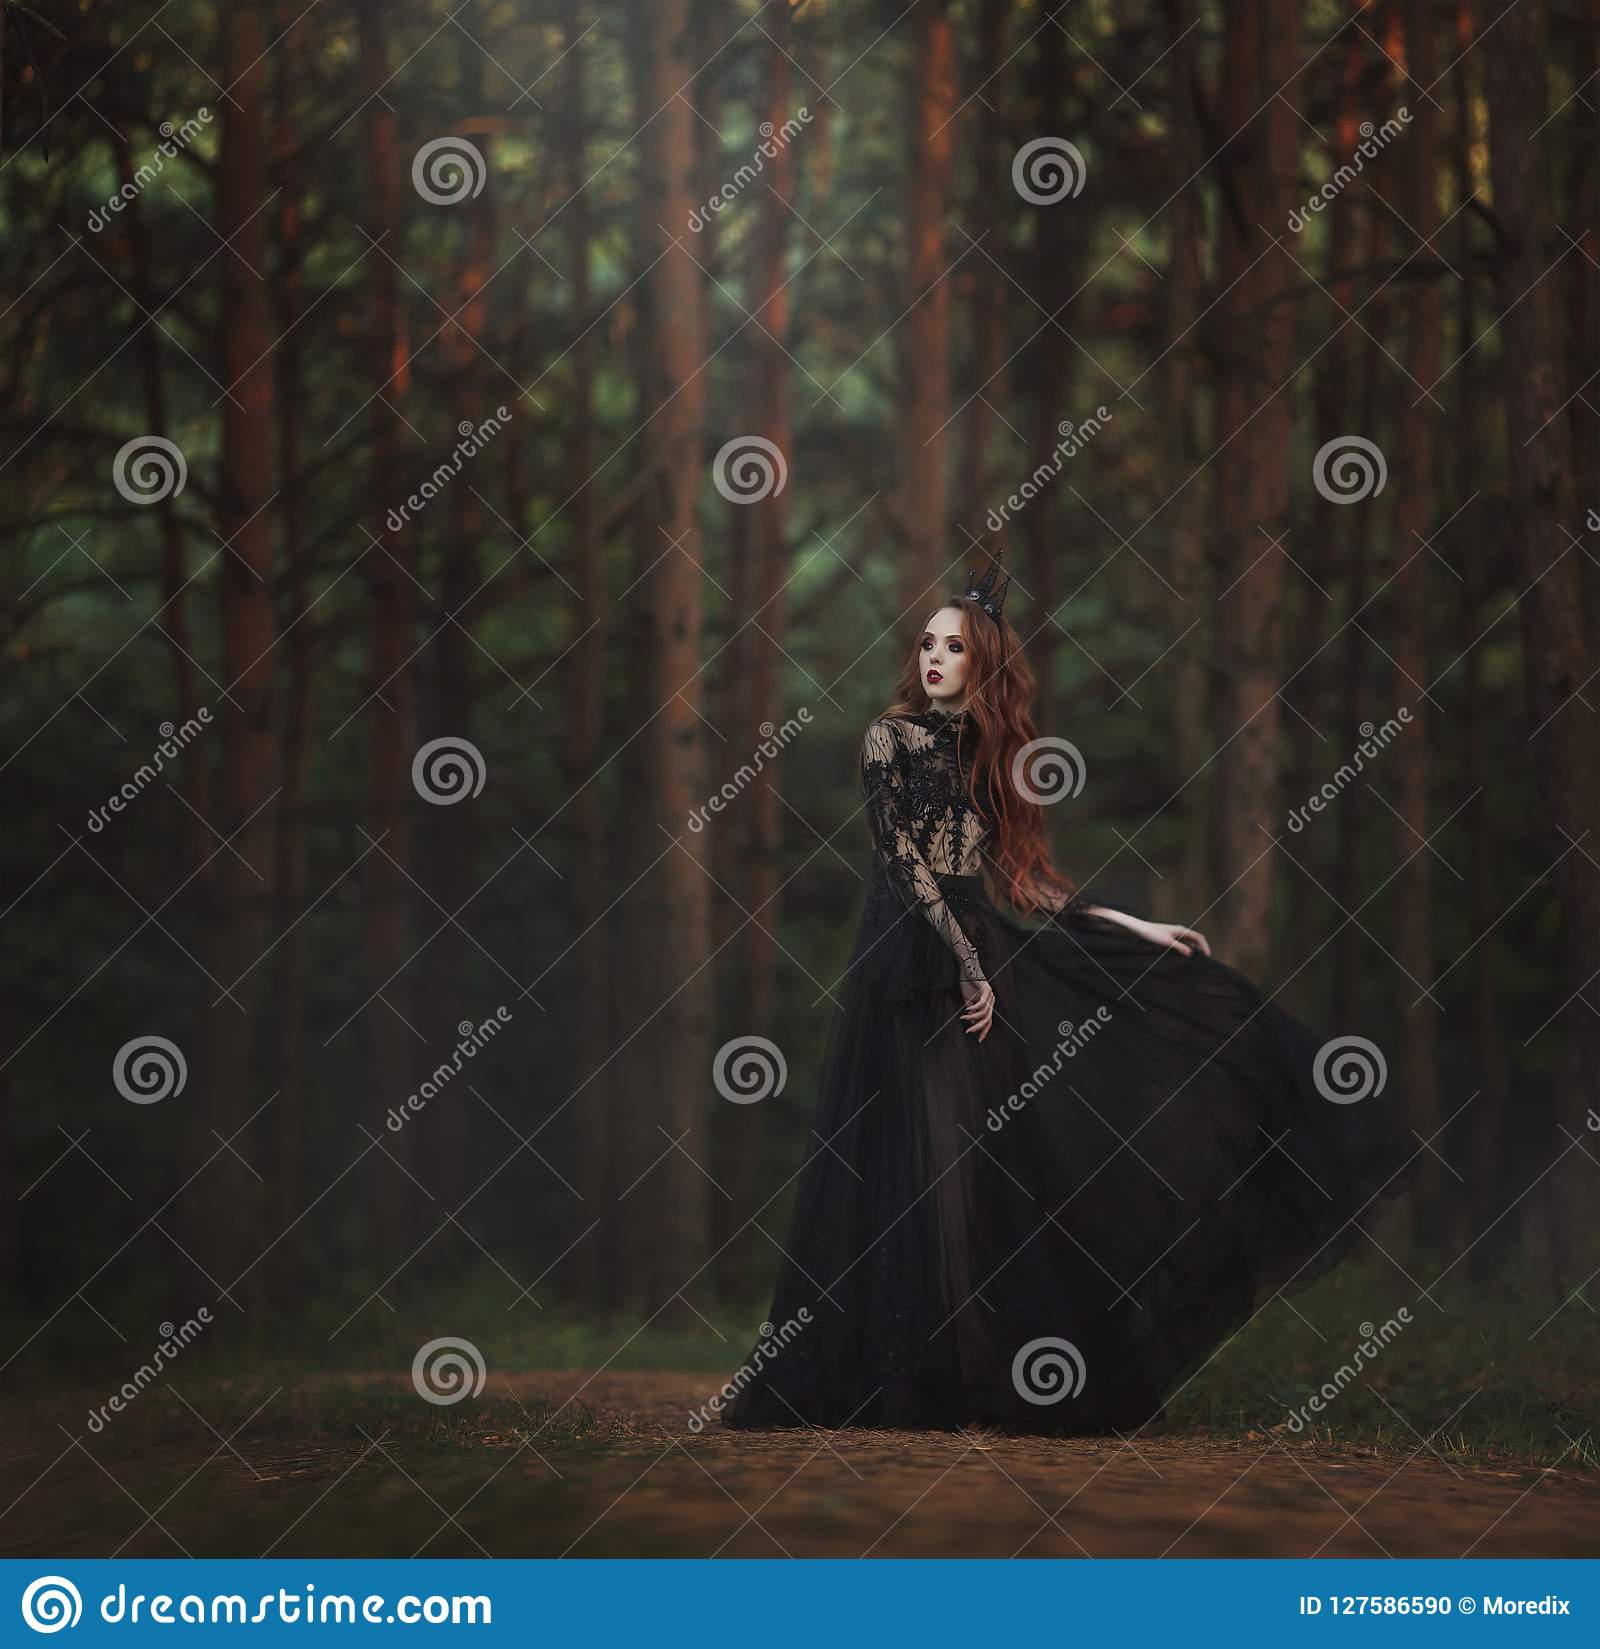 A beautiful gothic princess with pale skin and very long red hair in a black crown and a black long dress walks in a misty fairy-t